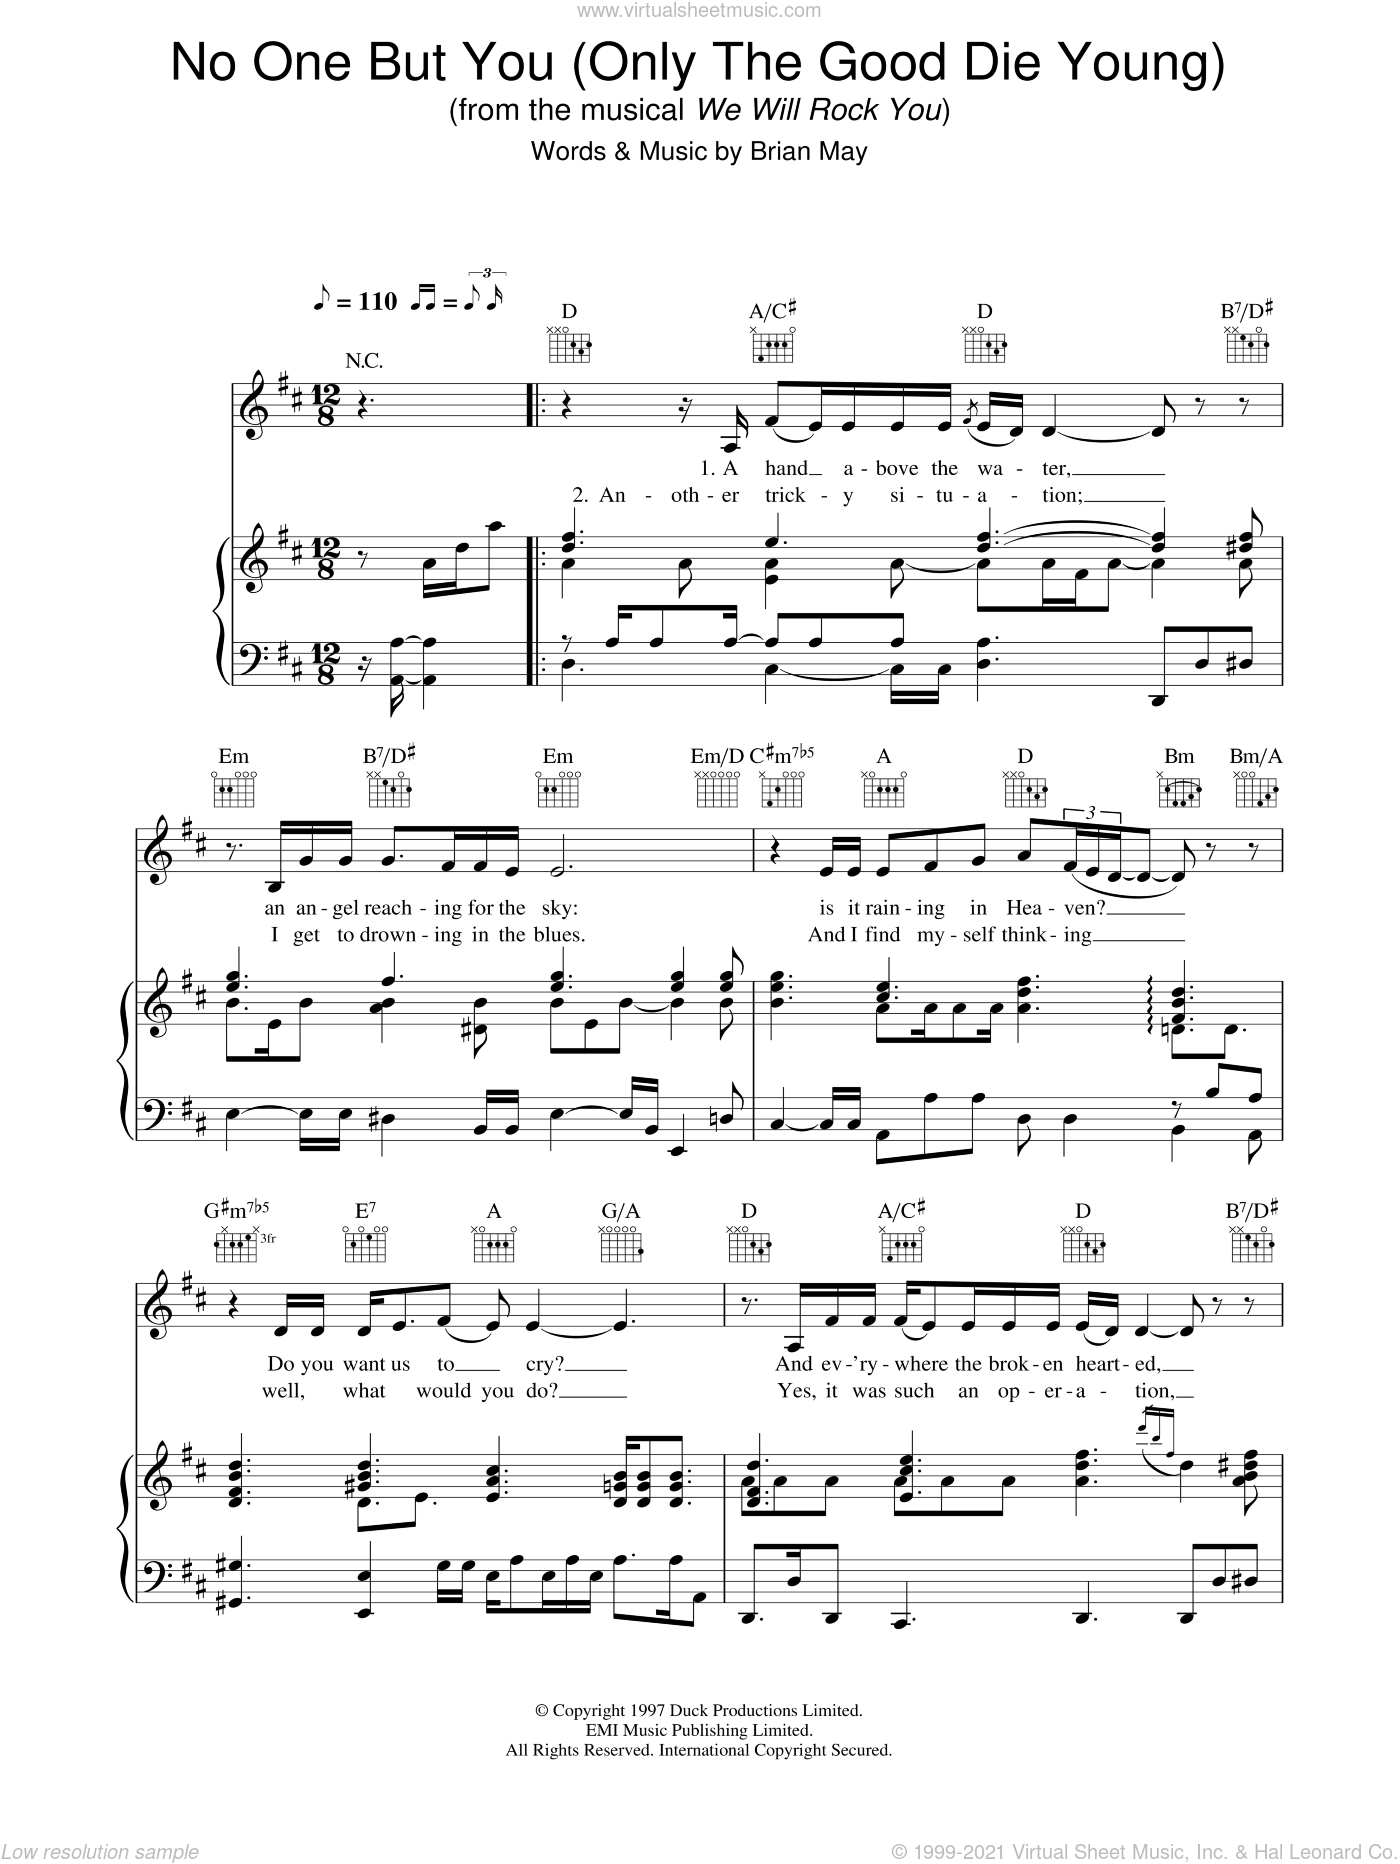 No One But You (Only The Good Die Young) sheet music for voice, piano or guitar by We Will Rock You, intermediate skill level